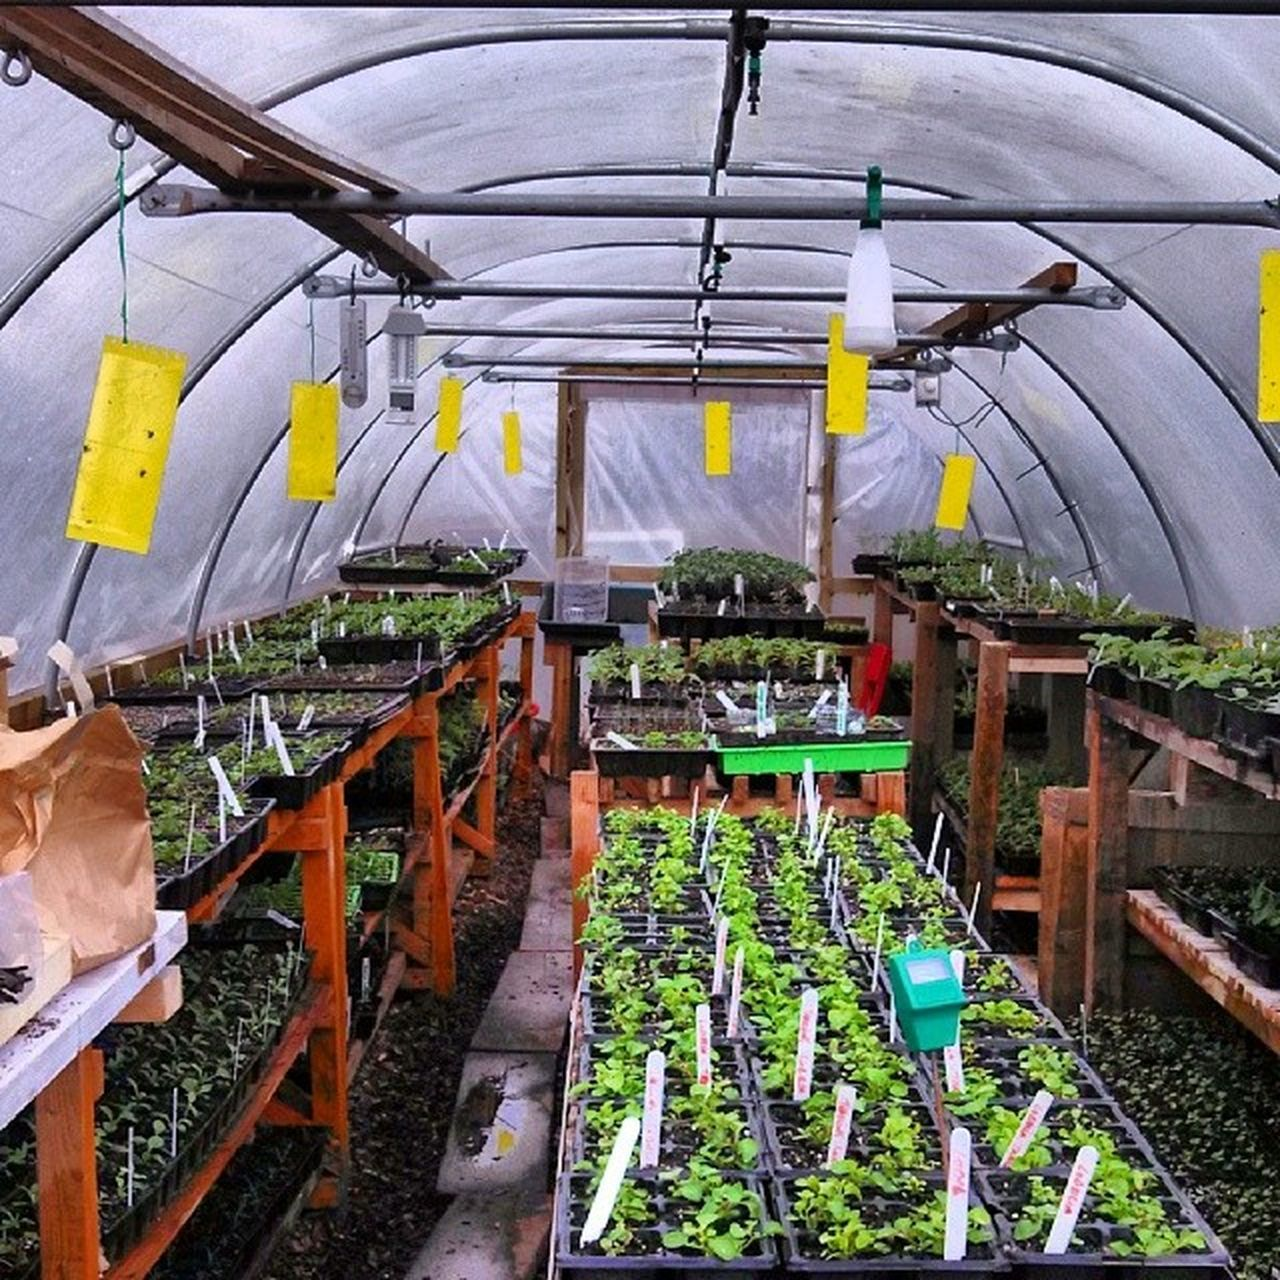 Polytunnel Madewelldevon Awesome Packed with beauty spring myoffice mydayattheoffice gardening gardeners live love life lucky